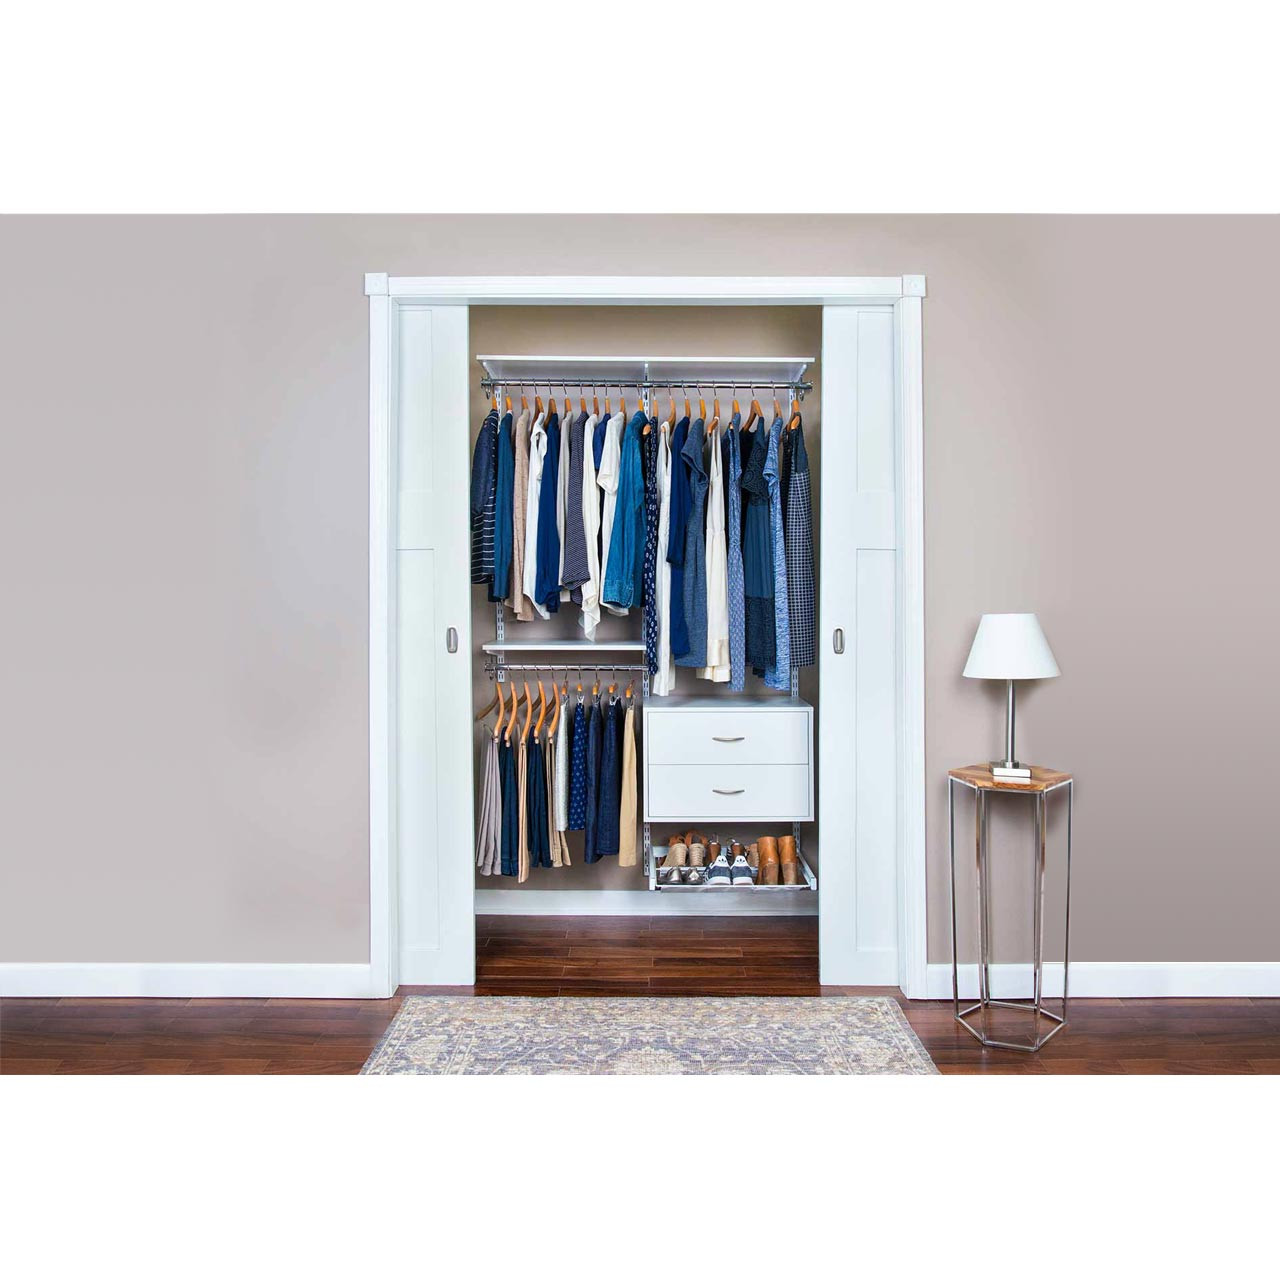 Completely Organized Adjustable Closet Kit - 48""